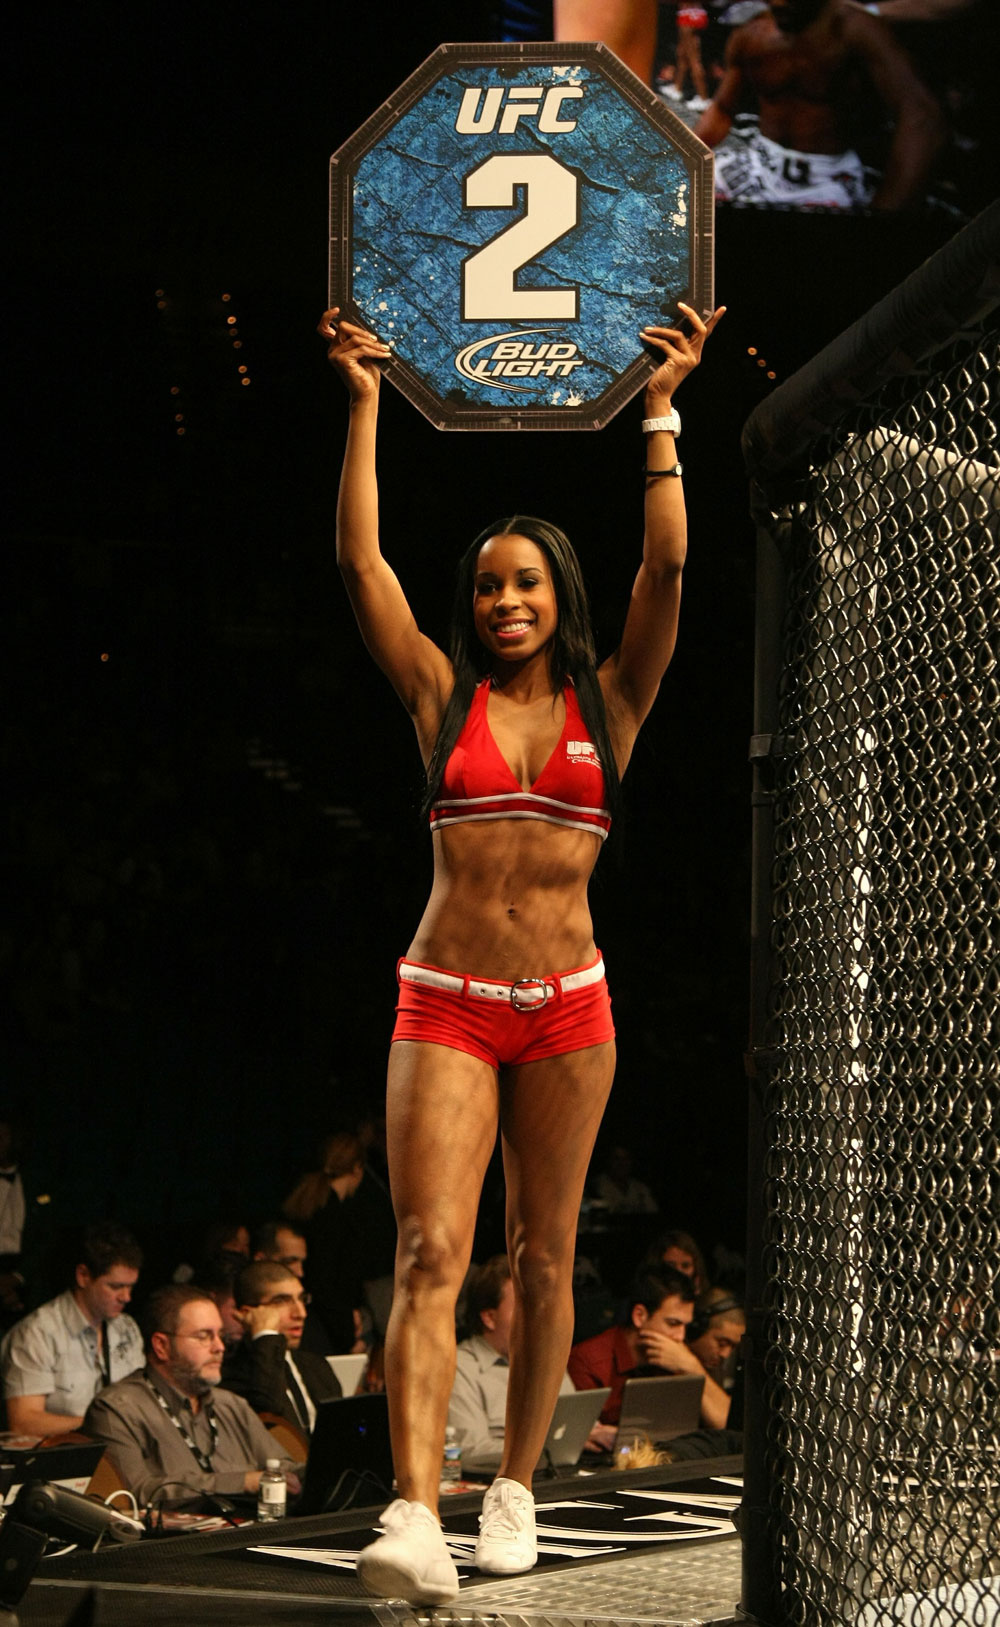 UFC 125 Chandella during Volkmann vs. McKee